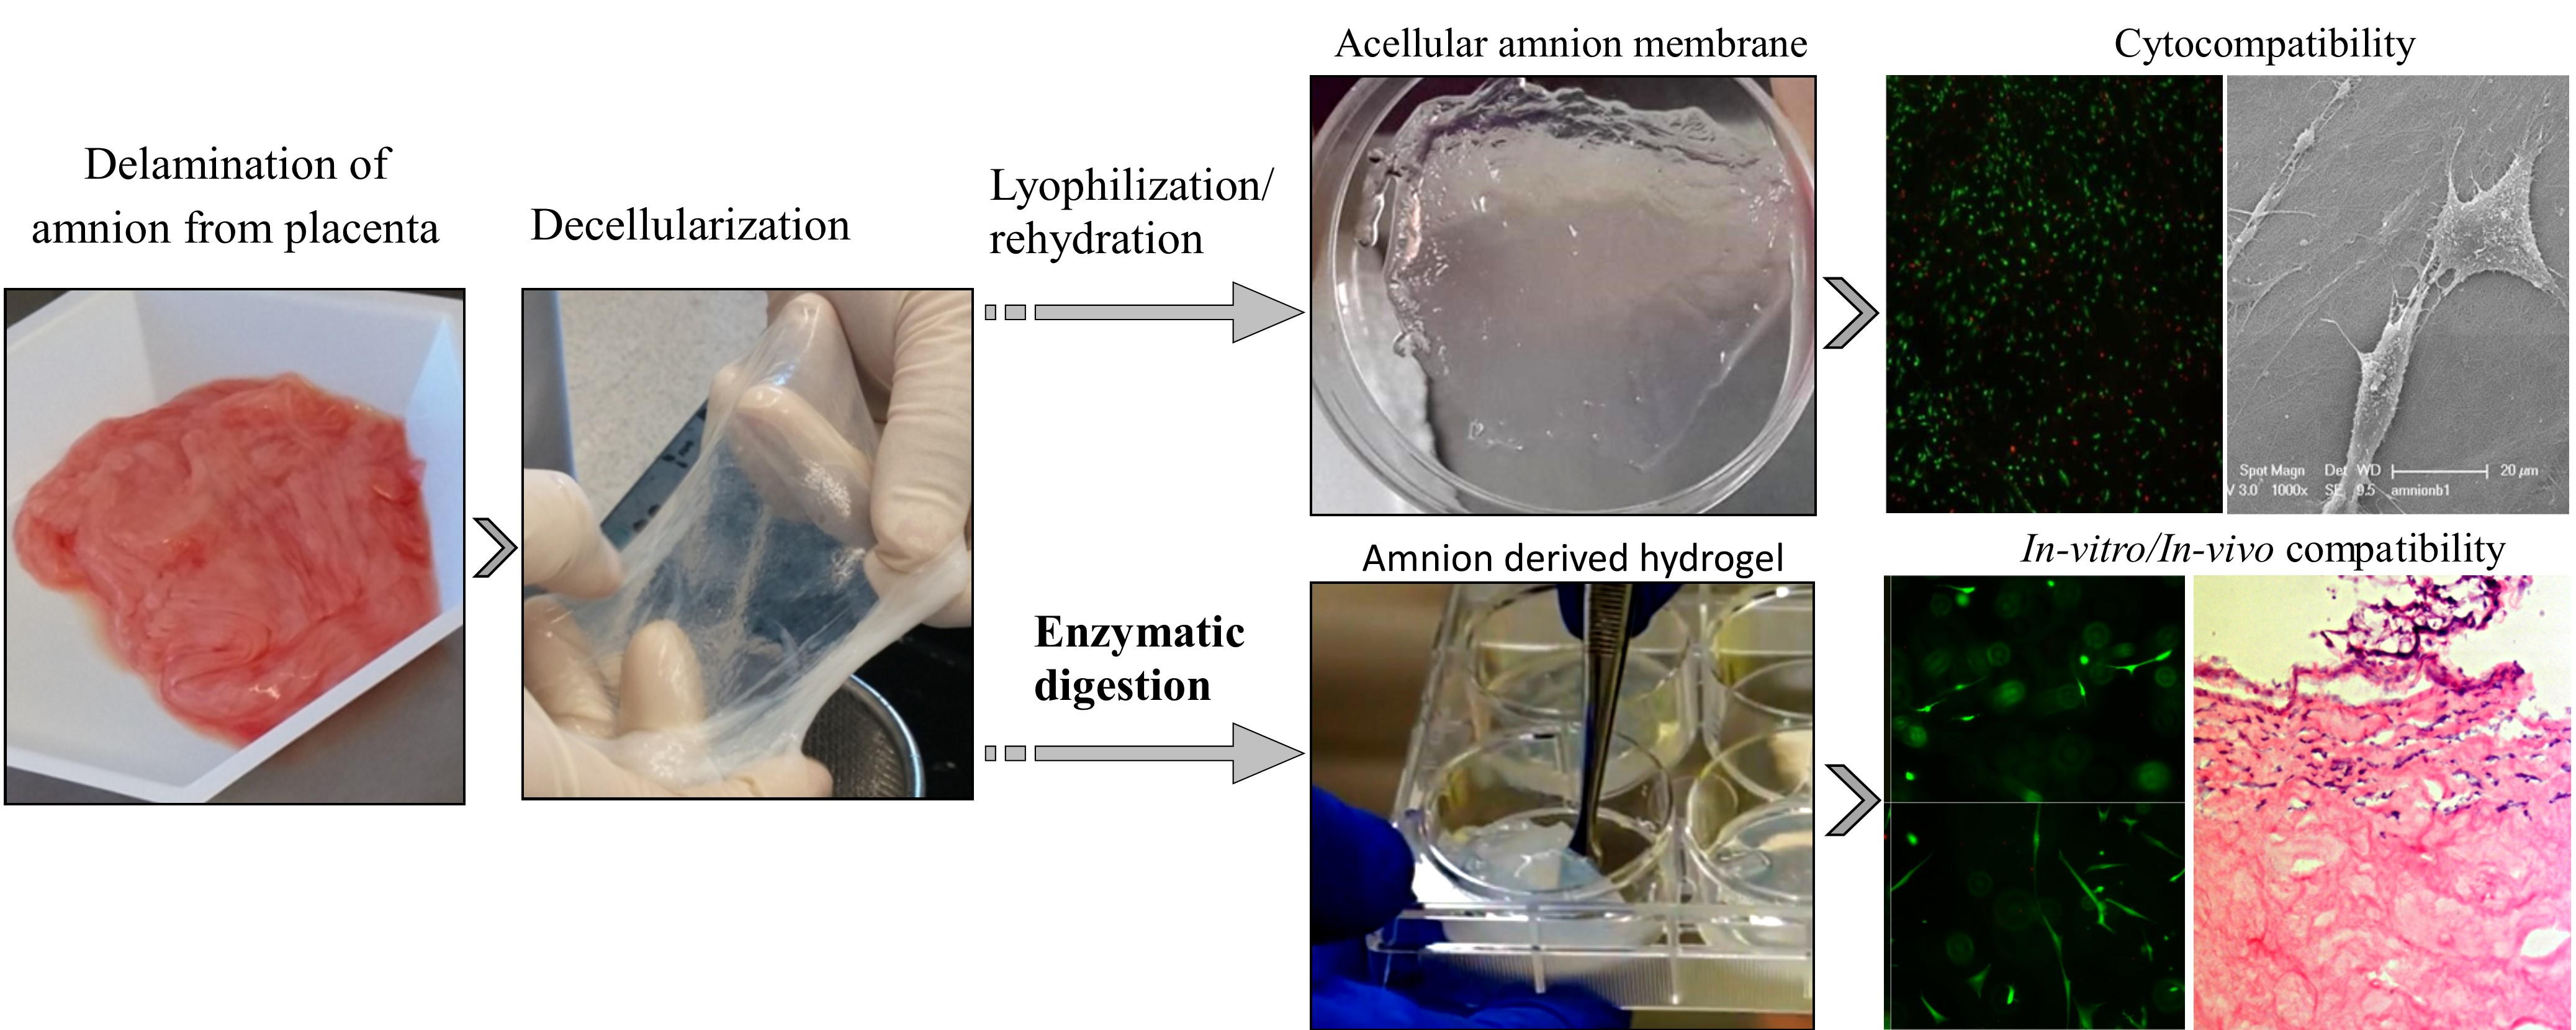 Human amnion extracellular matrix derived bioactive hydrogel for cell delivery and tissue engineering